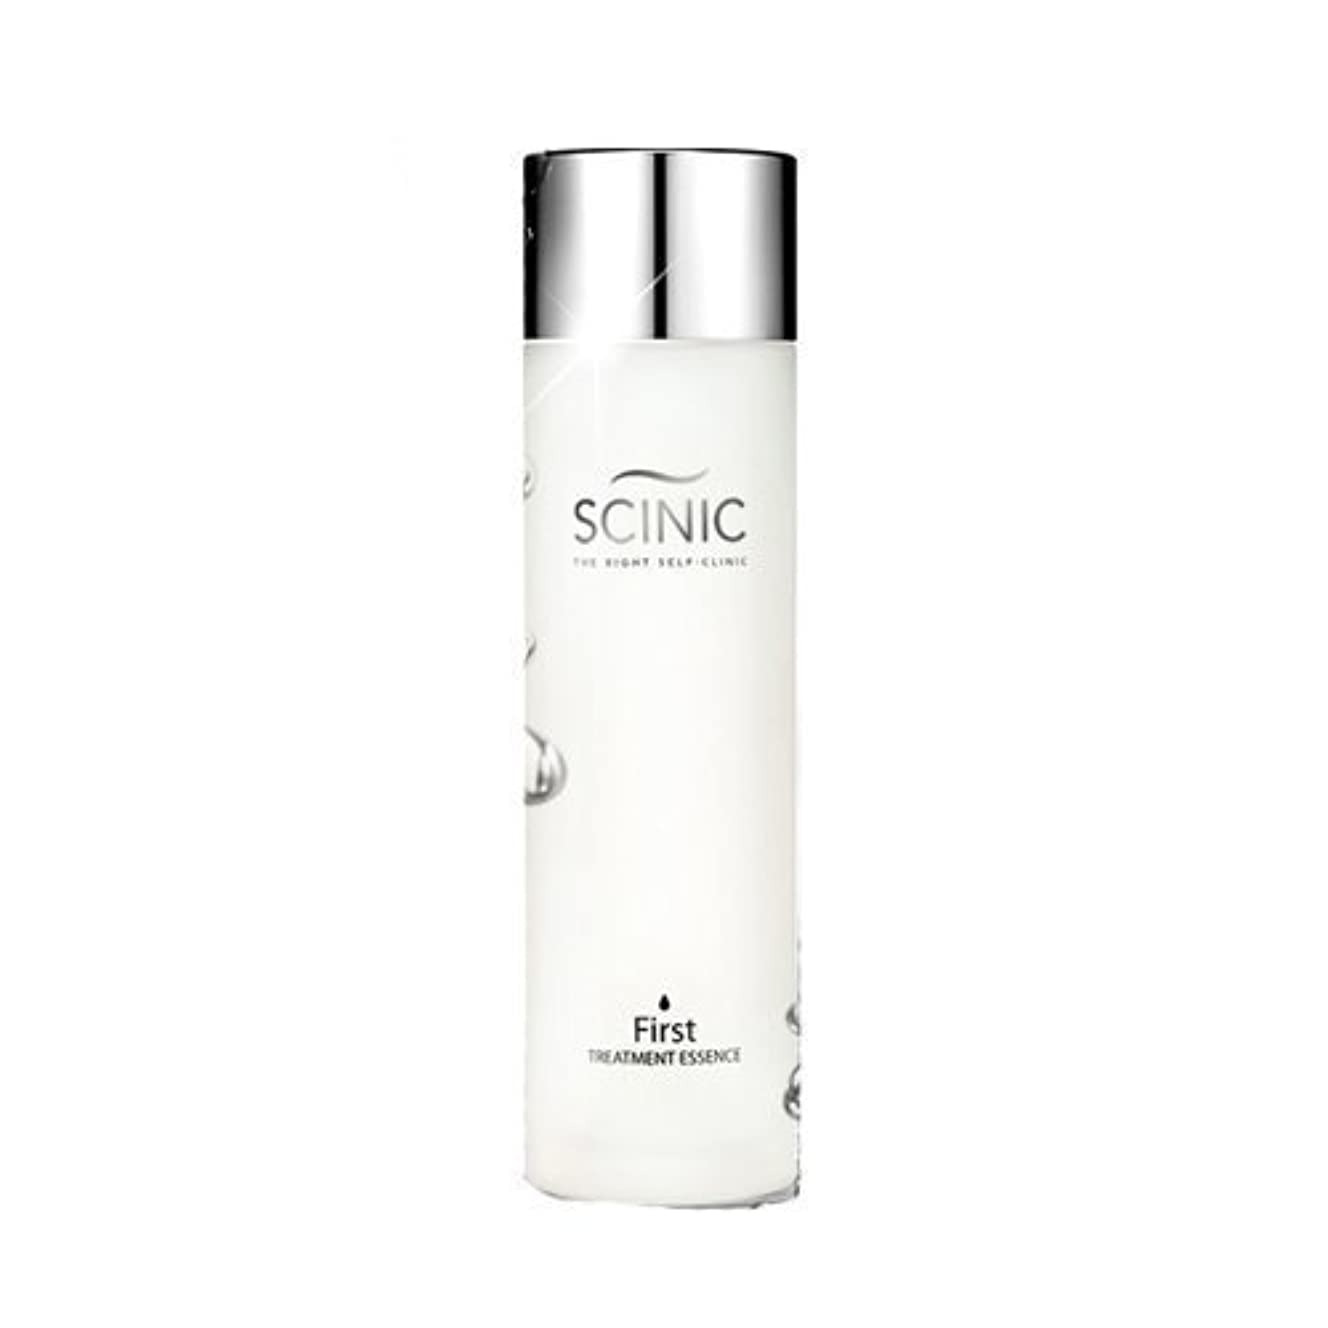 概要ハンドブックなぜSCINIC First Treatment Yeast Essence Galactomyces Whitening Anti-Wrinkle 150ml